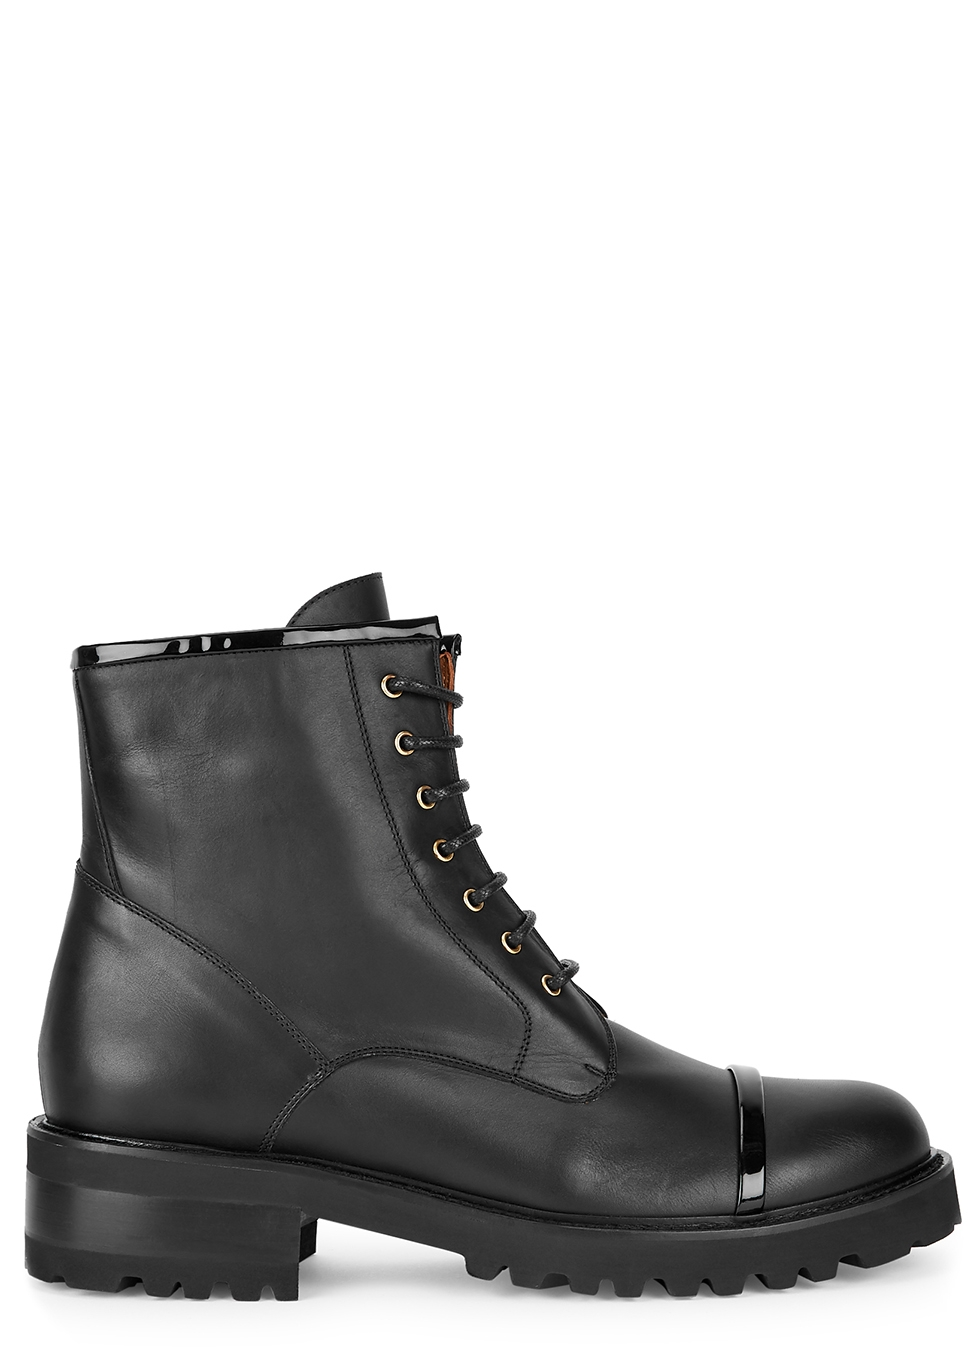 Bryce 50 black leather ankle boots